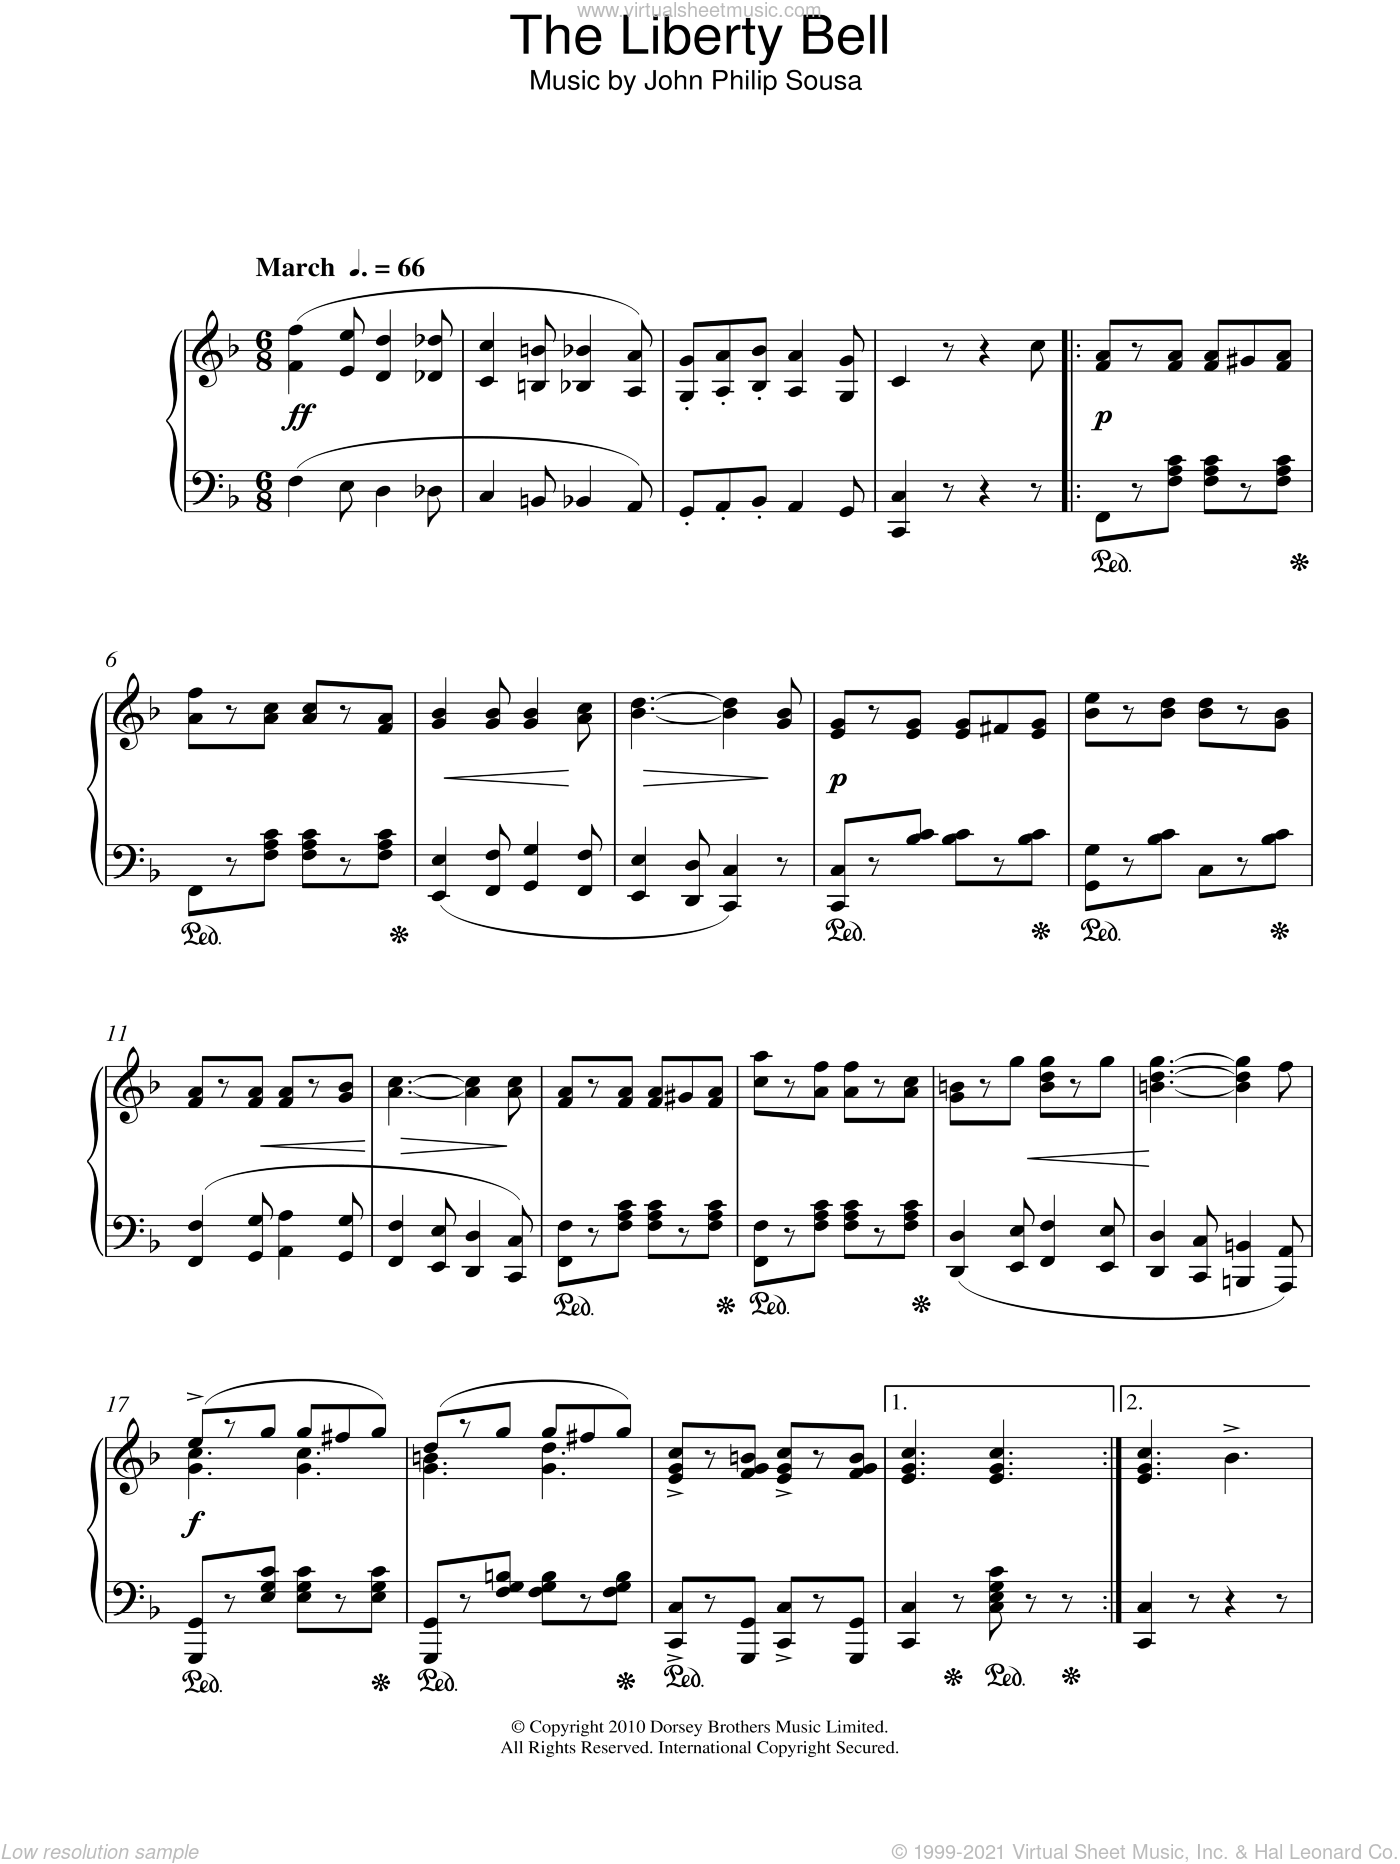 The Liberty Bell sheet music for piano solo by John Philip Sousa, intermediate skill level